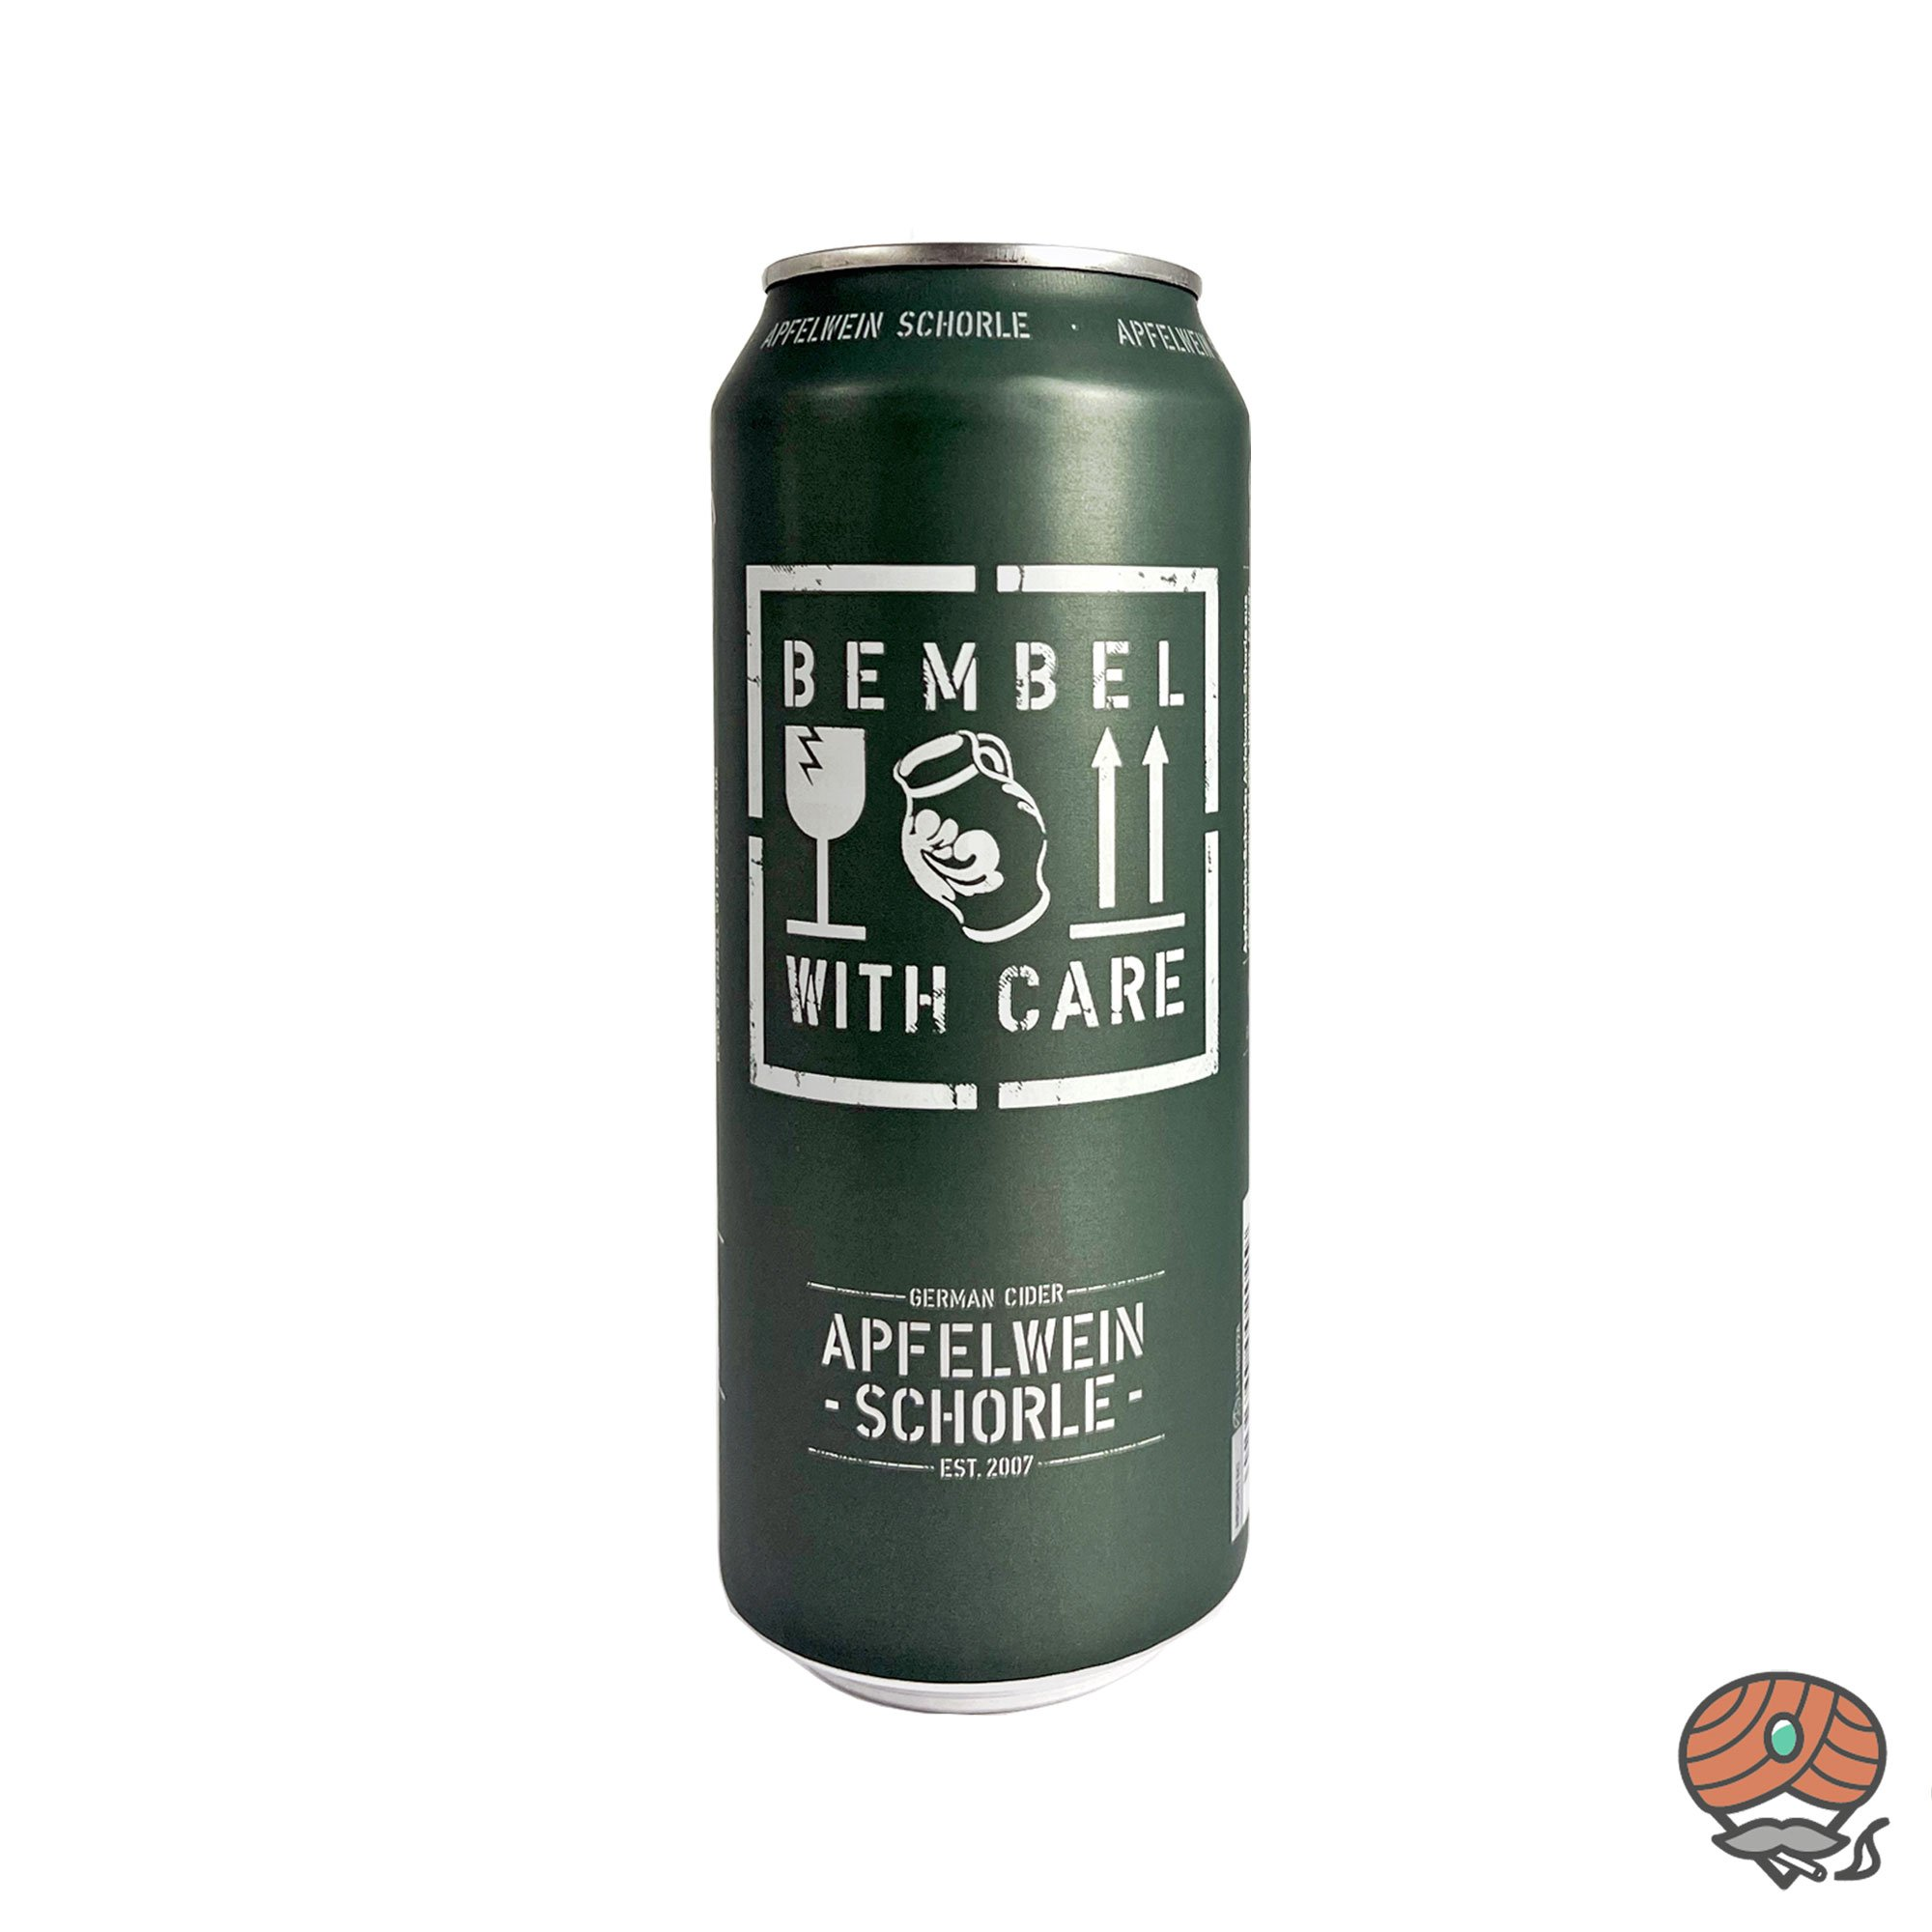 Bembel with Care Apfelwein Schorle 0,5l, alc. 4,0% Vol.